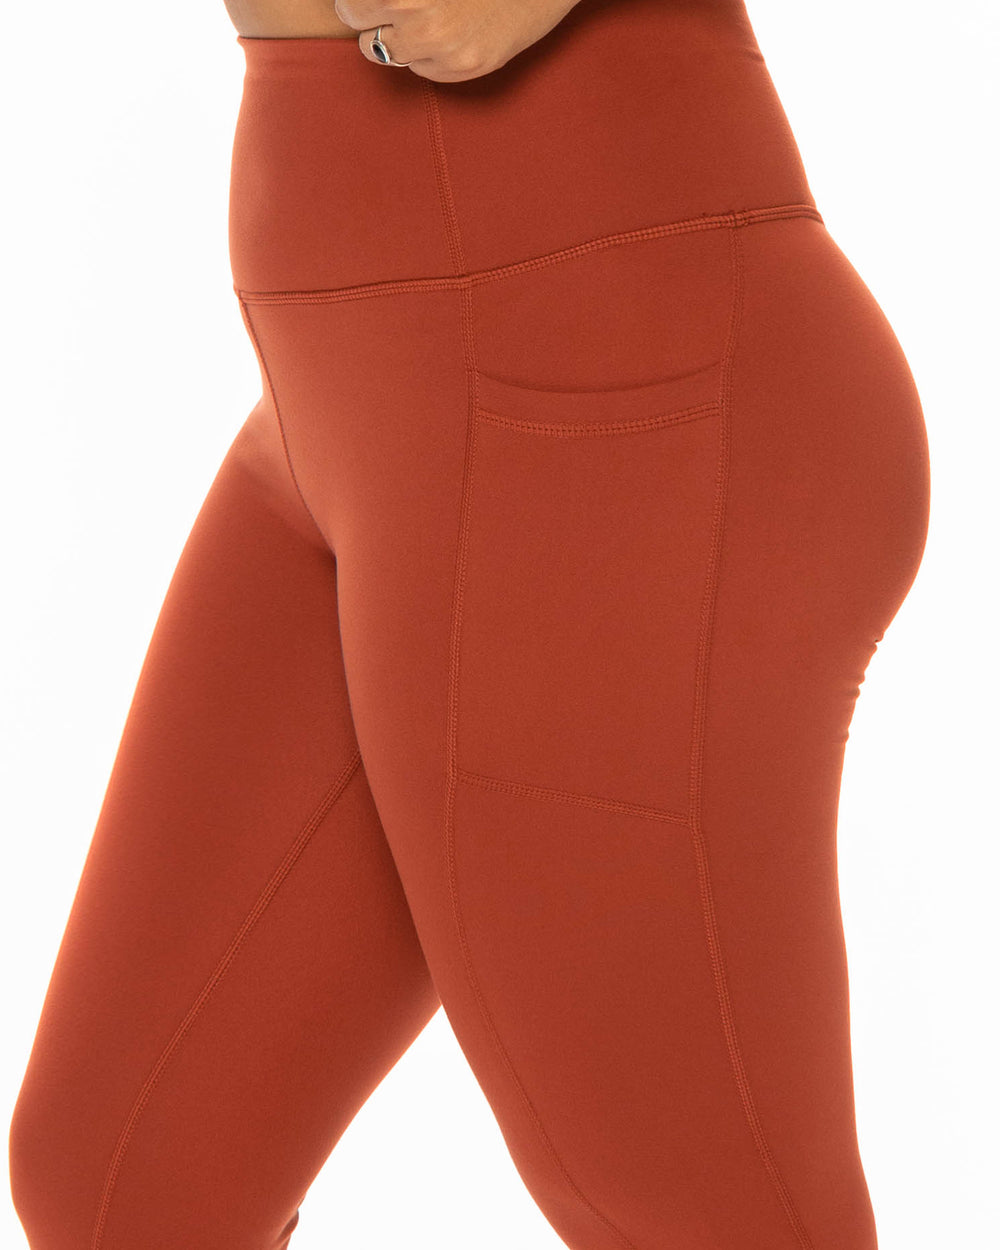 All Day Leggings - Autumn